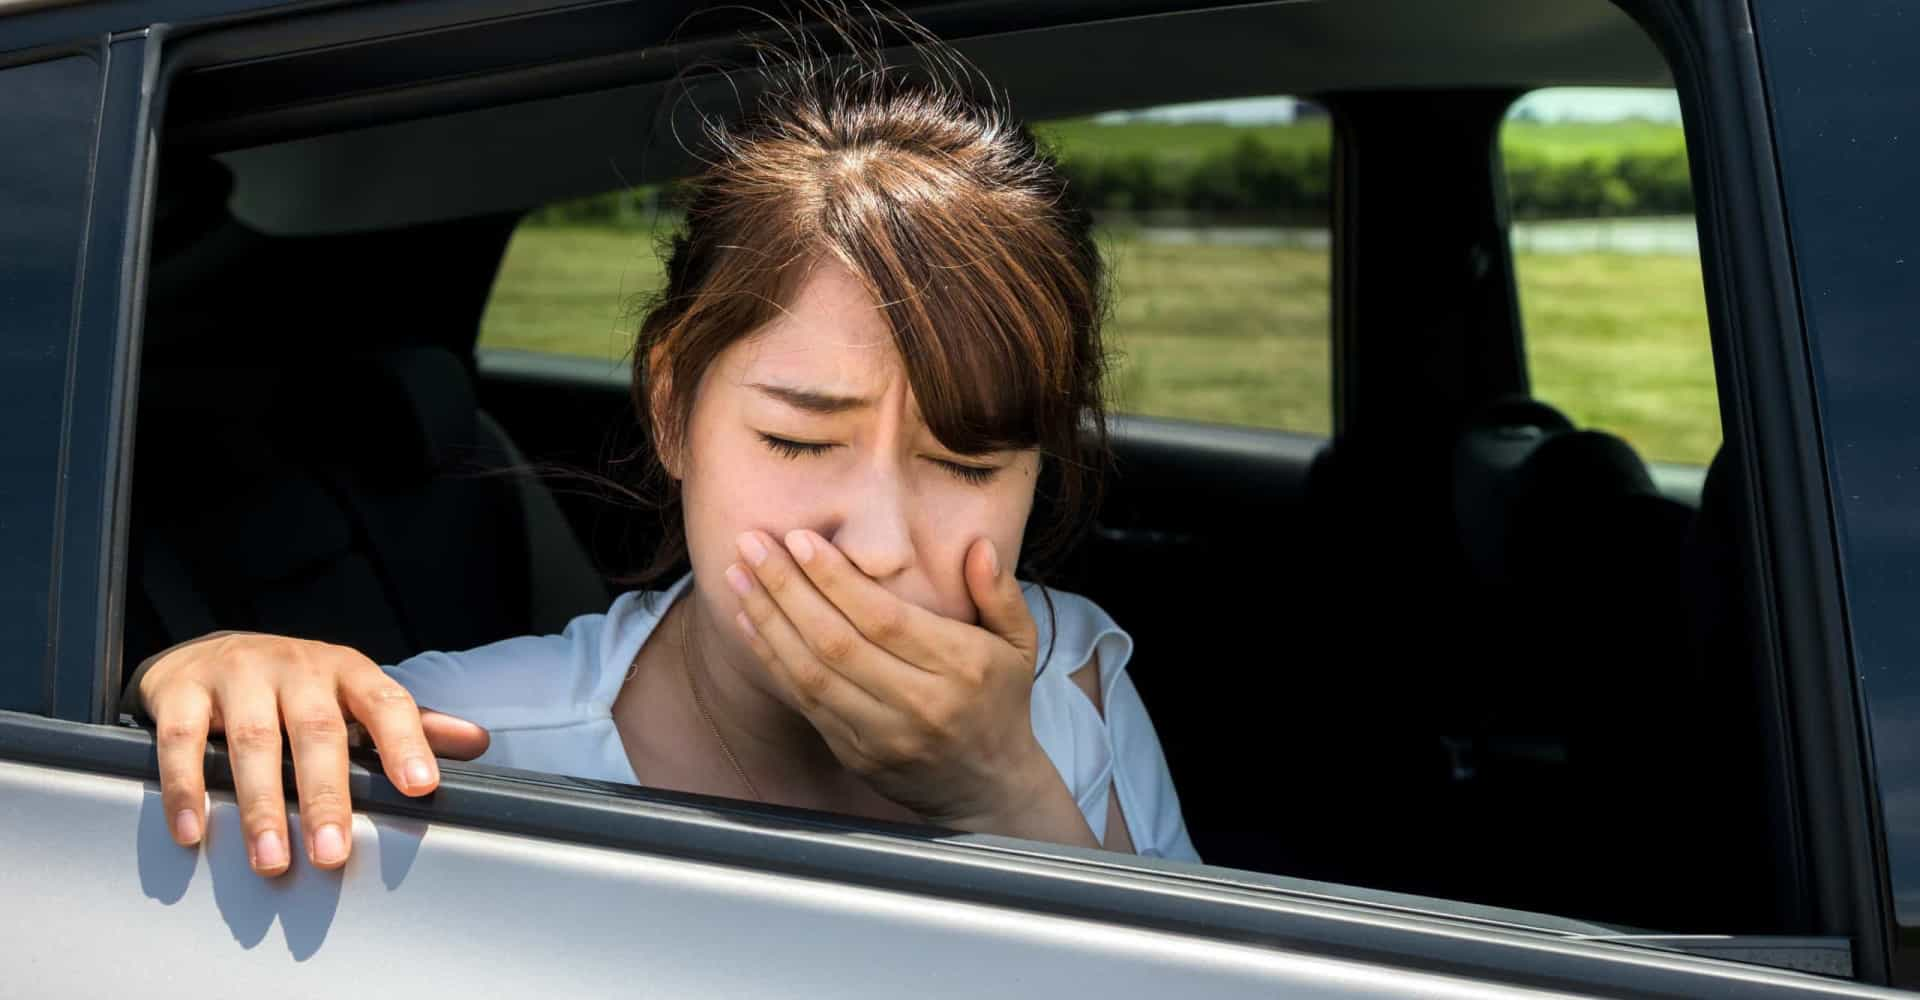 Motion sickness is worse in the modern age, here's why